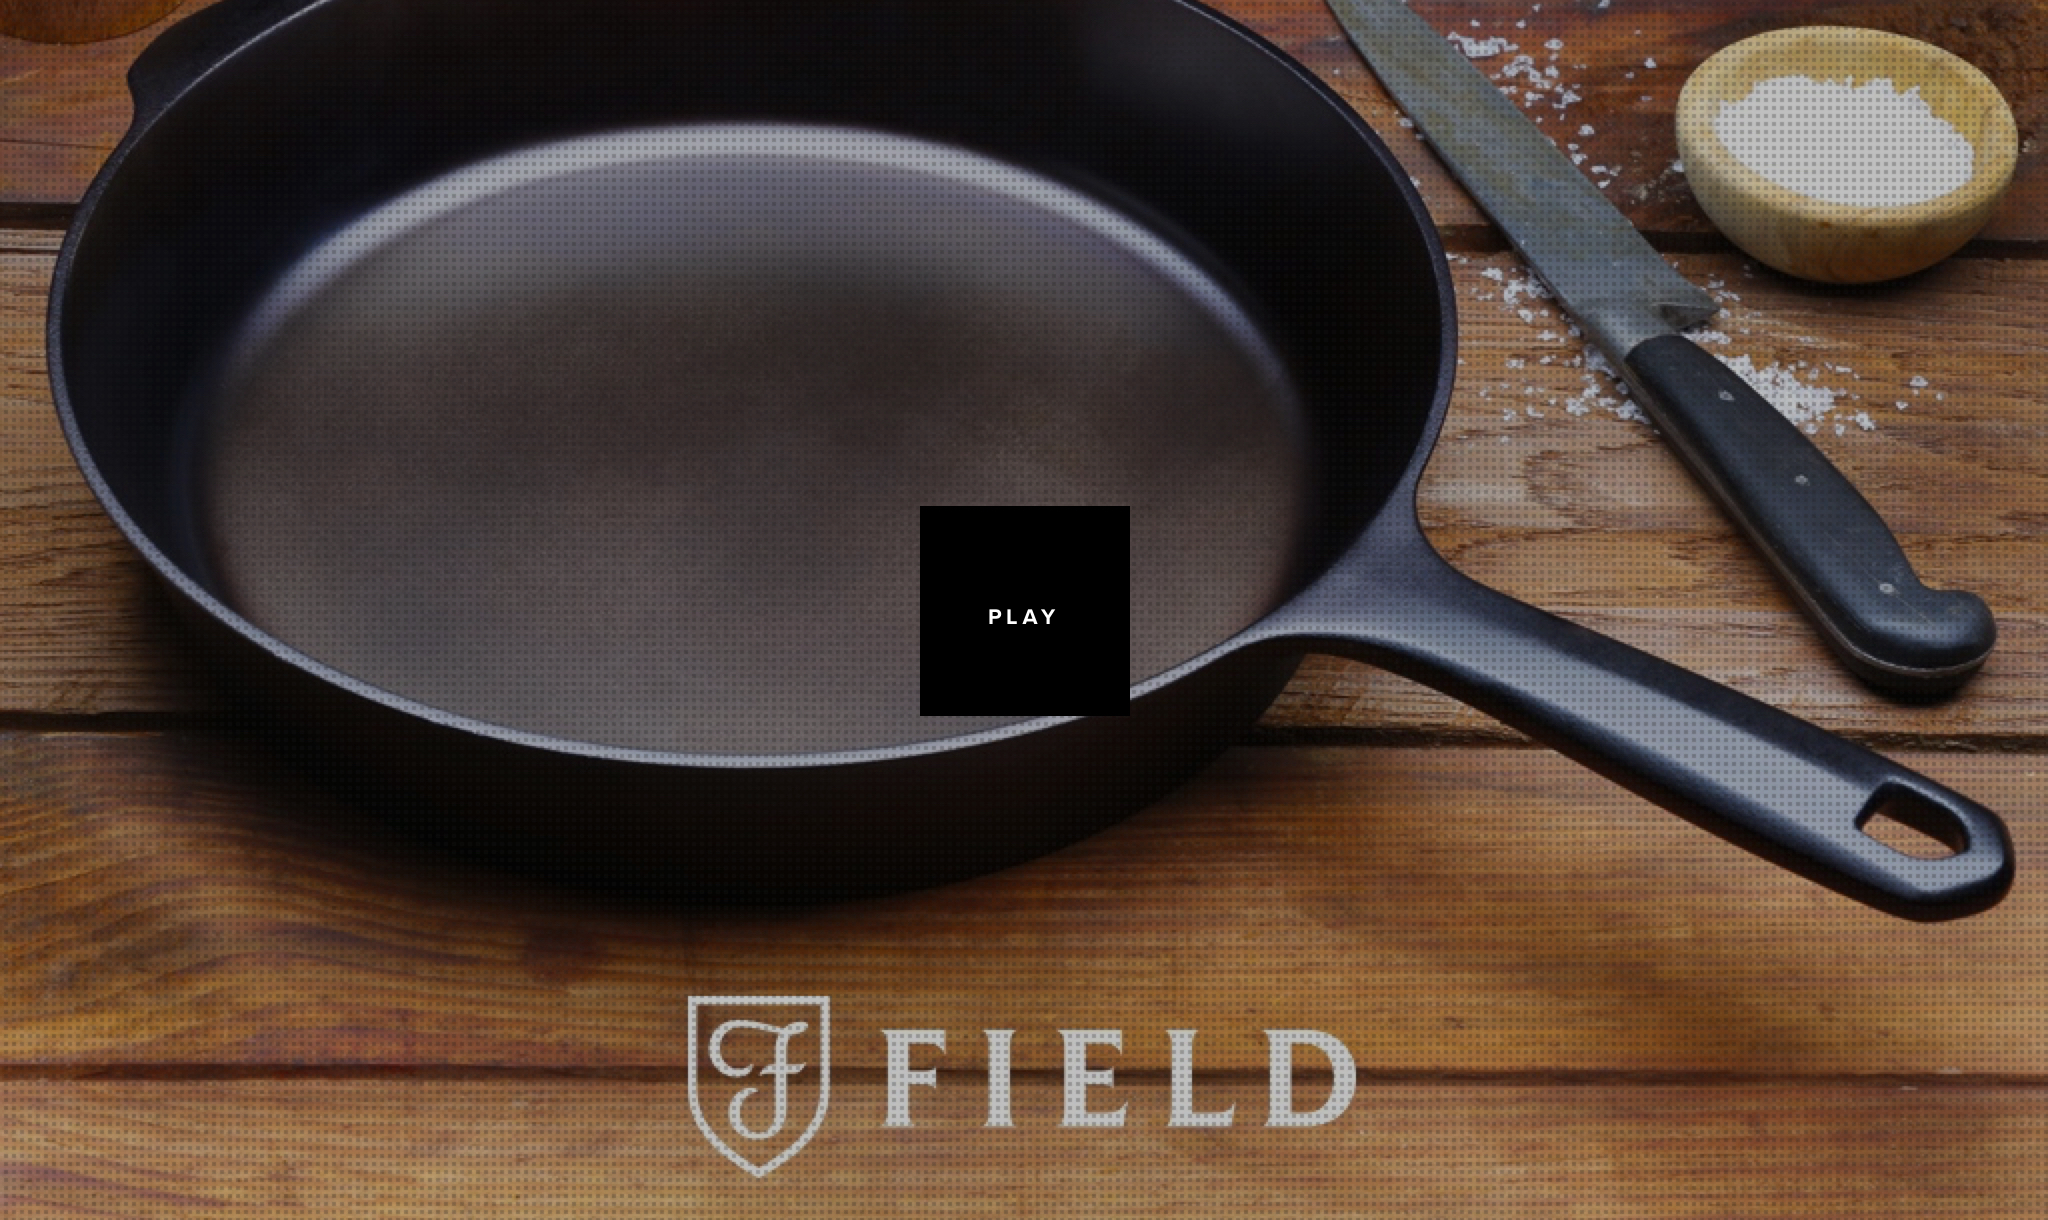 Cast iron skillet design by Prime Studio